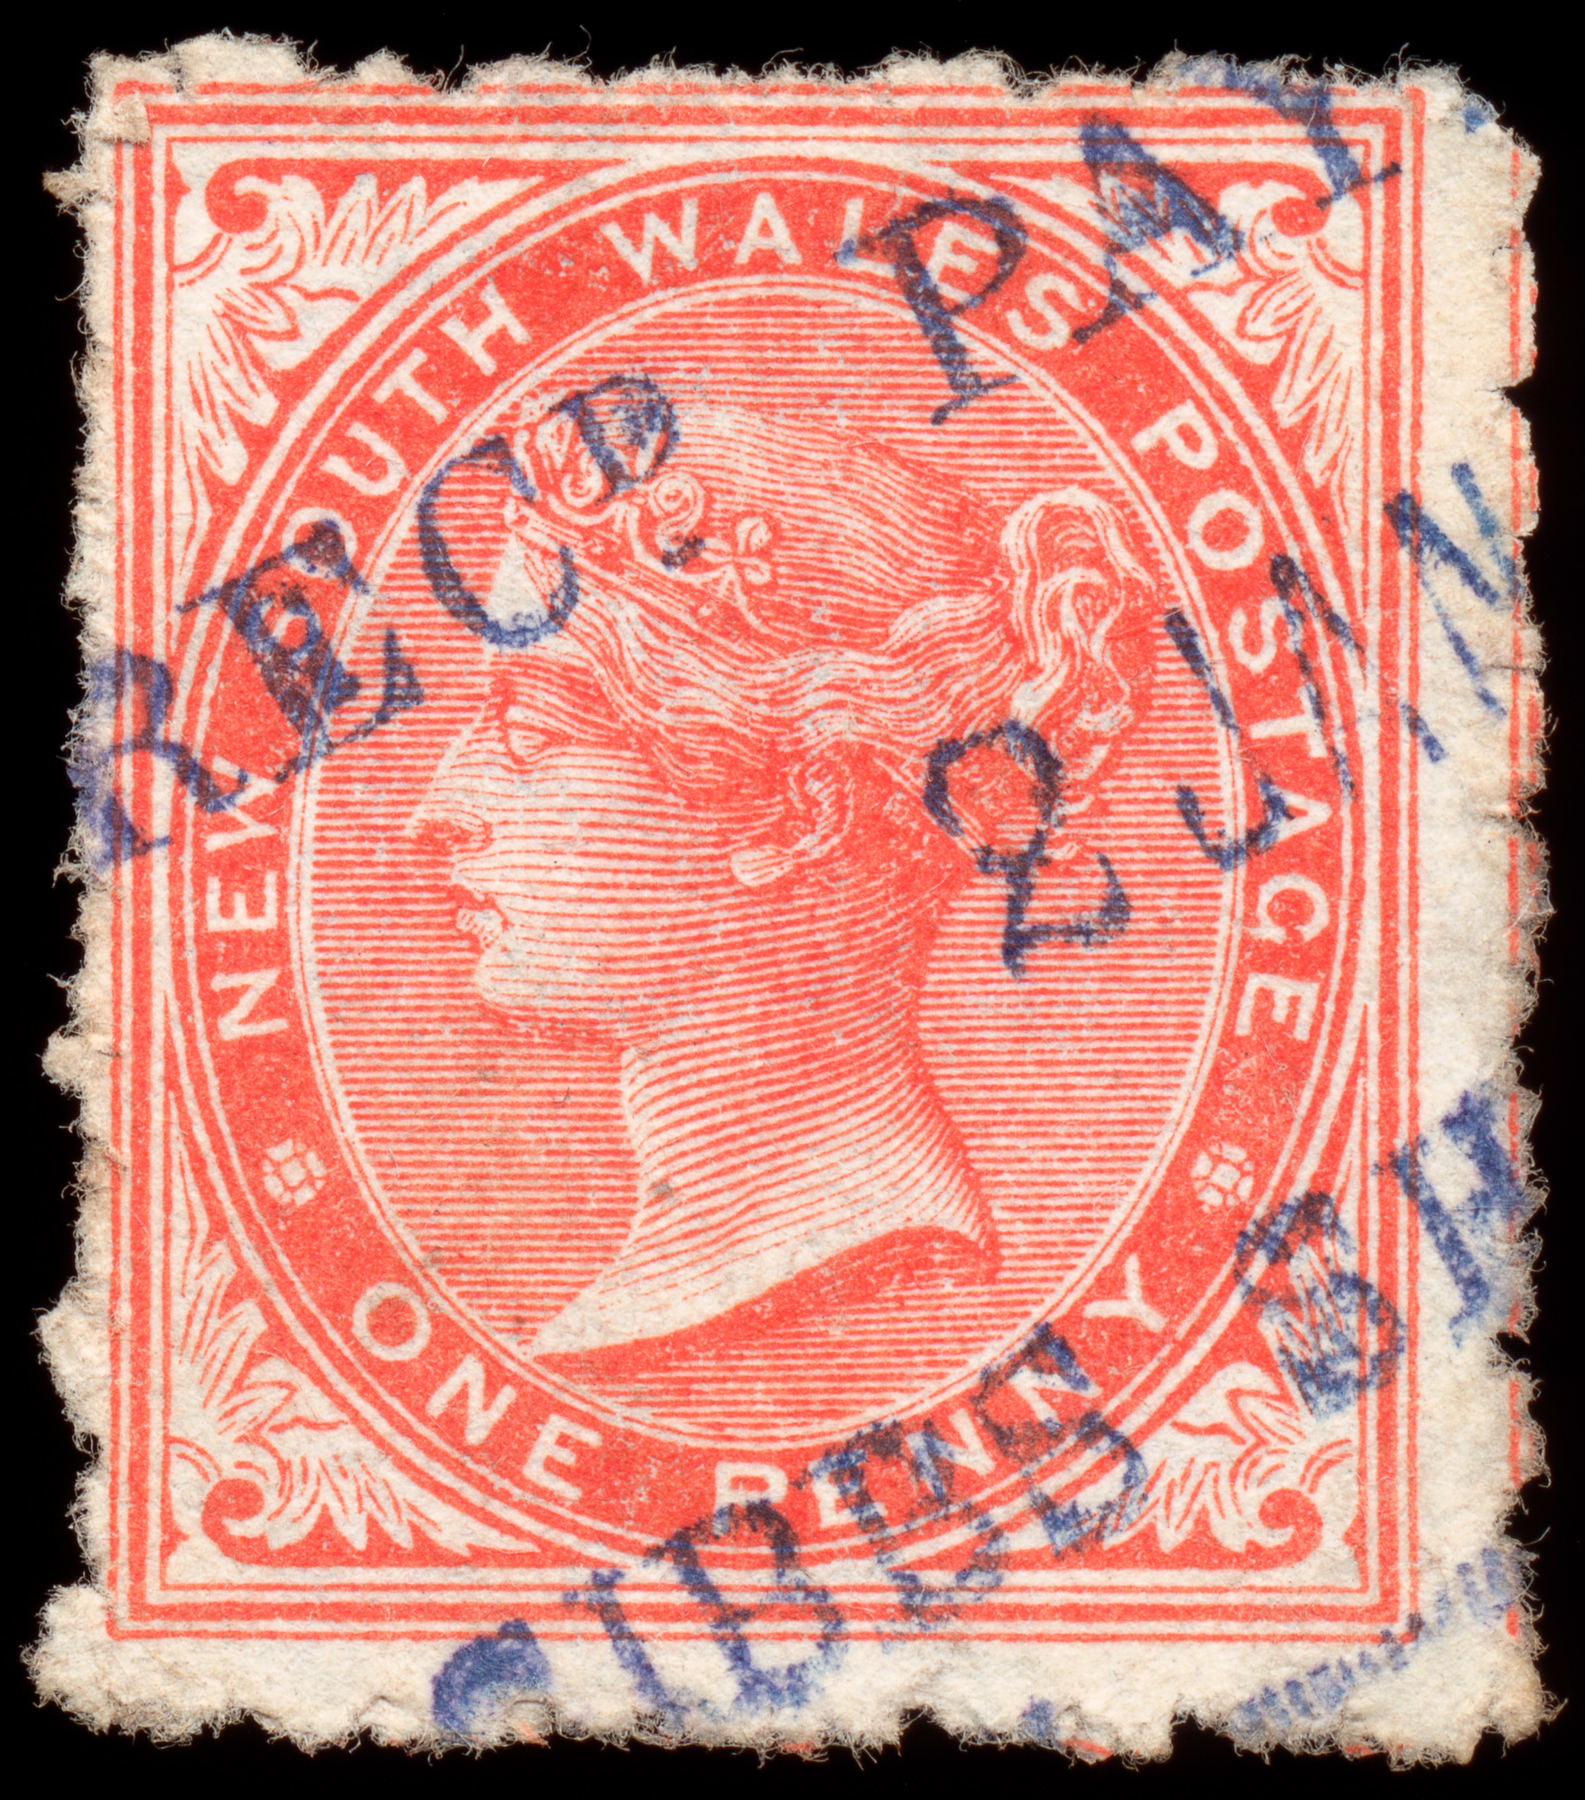 Red queen victoria stamp photo